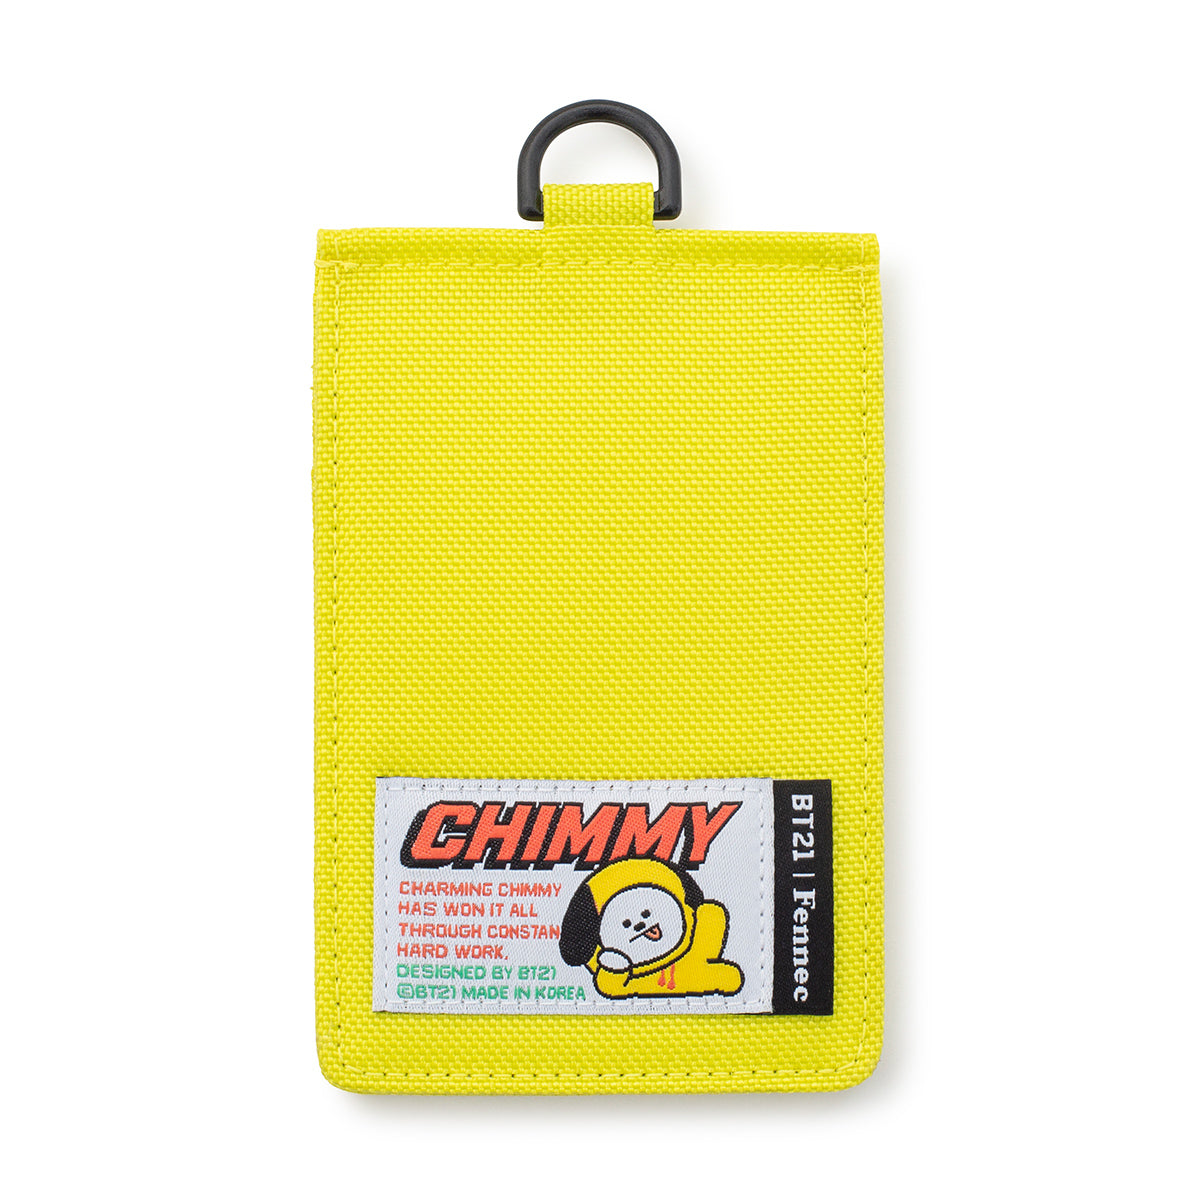 BT21 CHIMMY Fennec Neck Strap Card Holder